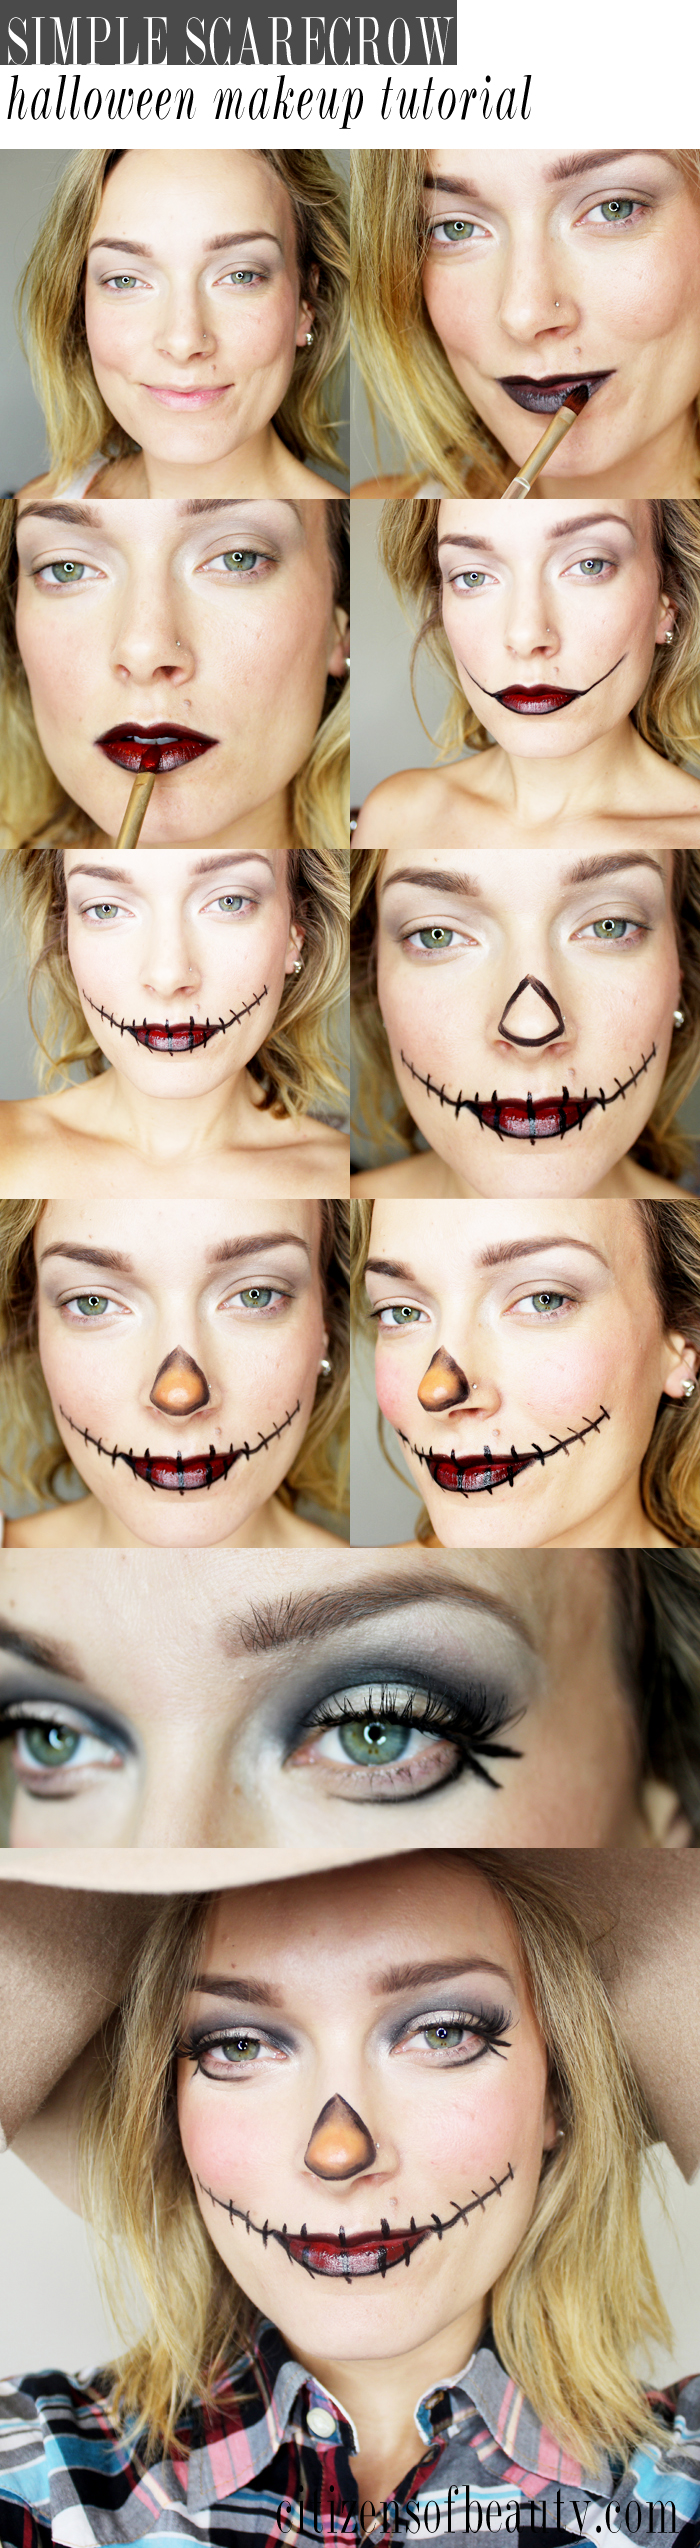 how to get scarecrow makeup